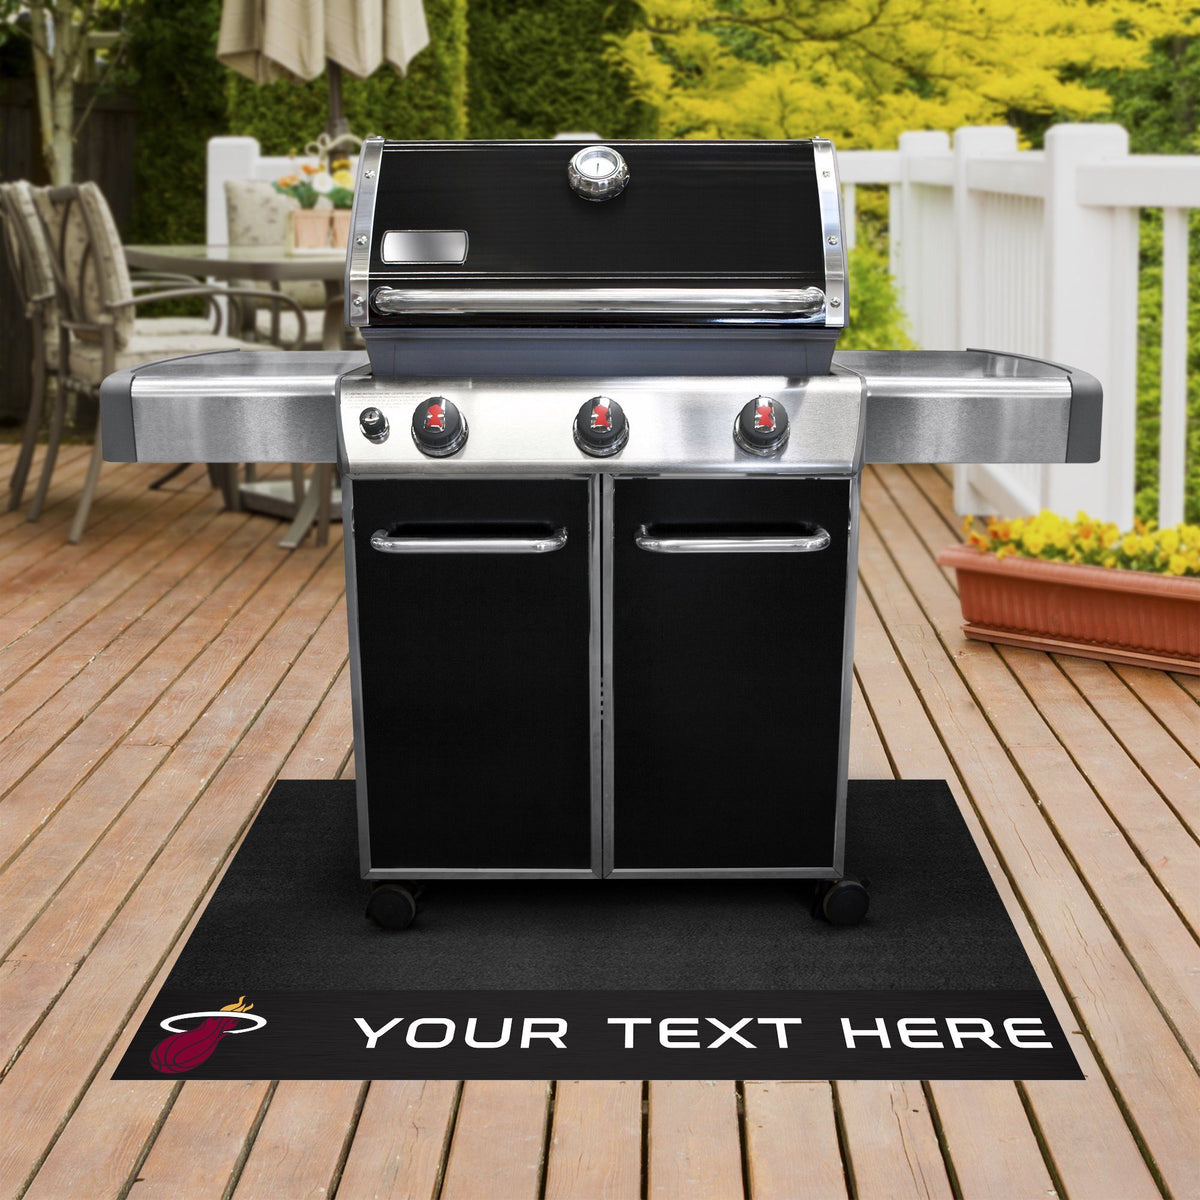 NBA Personalized Grill Mat Personalized Grill Mat Fan Mats Miami Heat